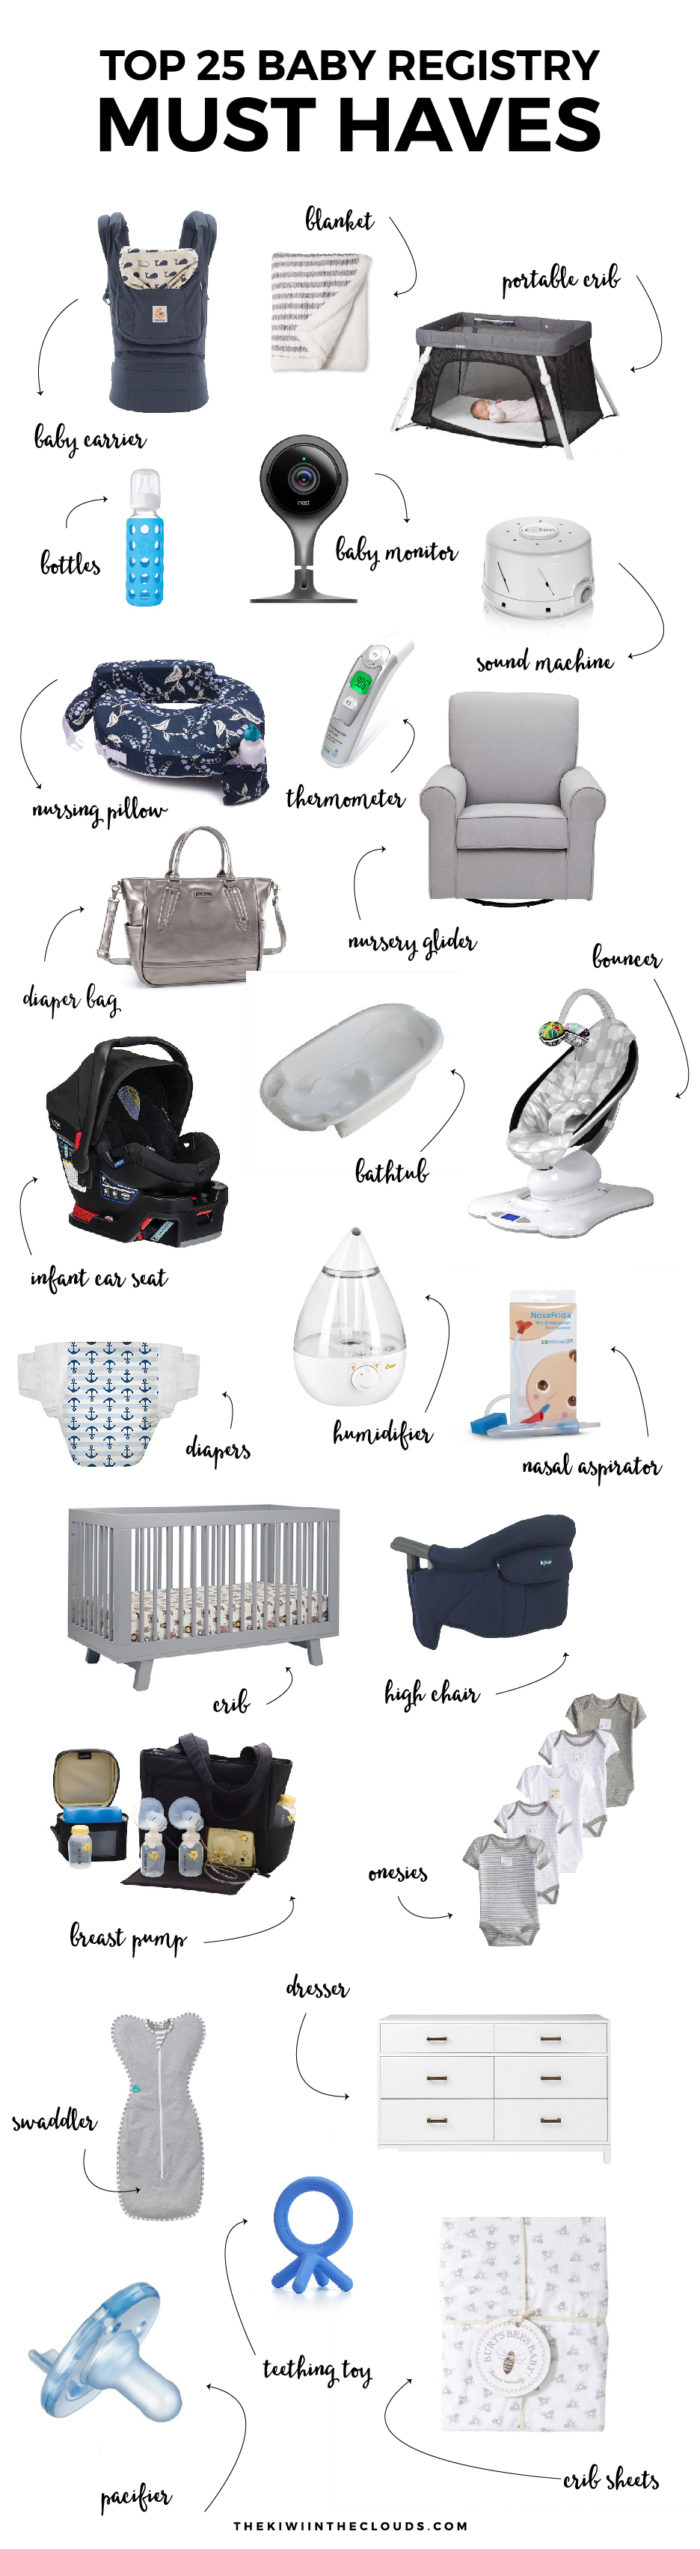 The Top 25 Baby Registry Must Haves Every Mom To Be Needs